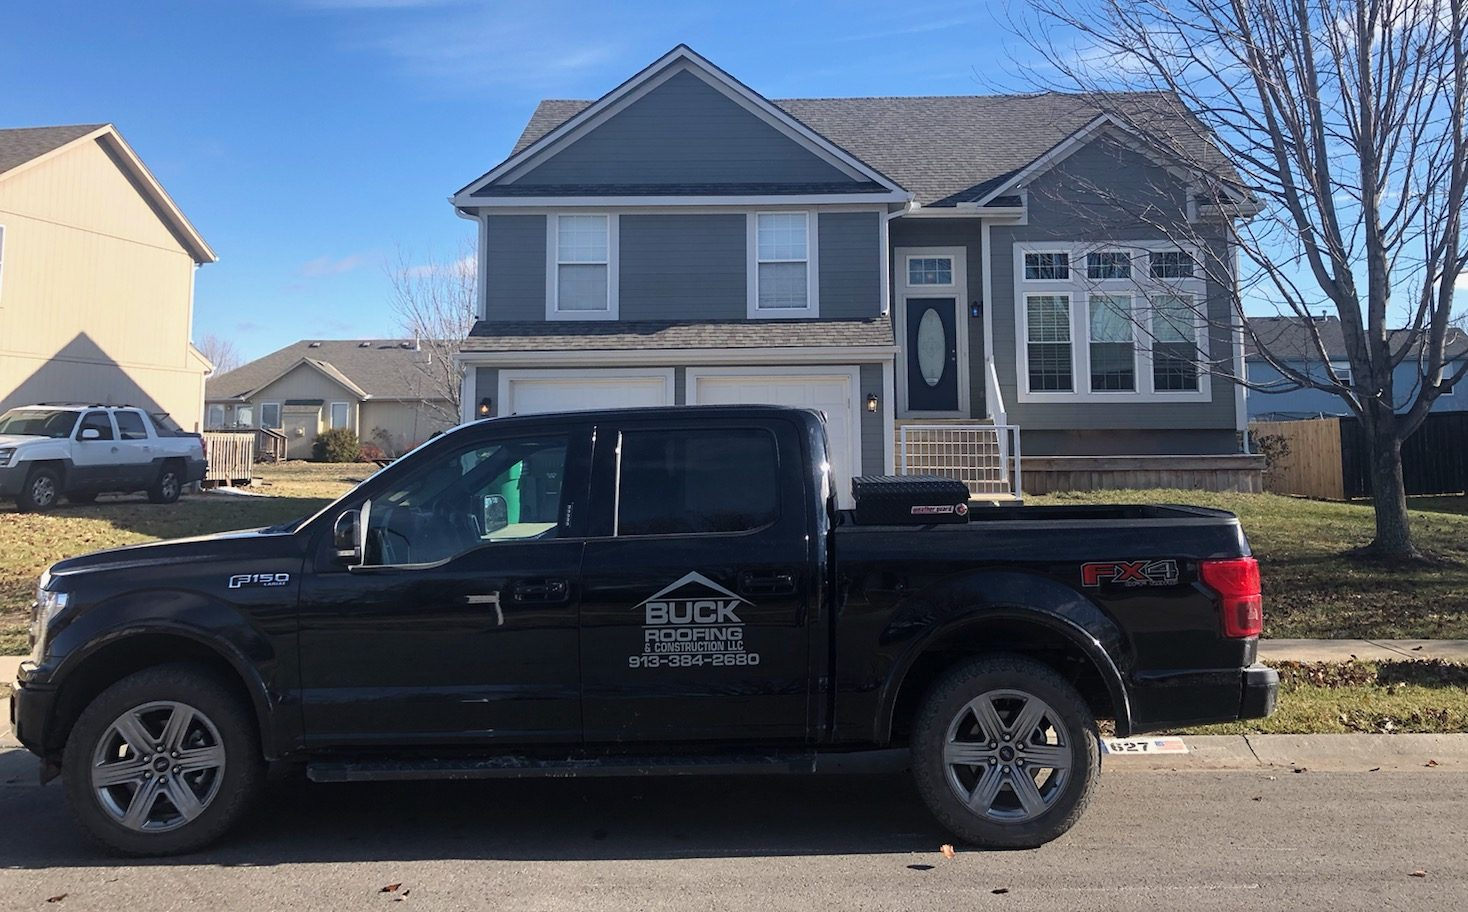 Buck Roofing - Residential Roofing Company - Kansas and Missouri - Certainteed Landmark - Weathered Wood